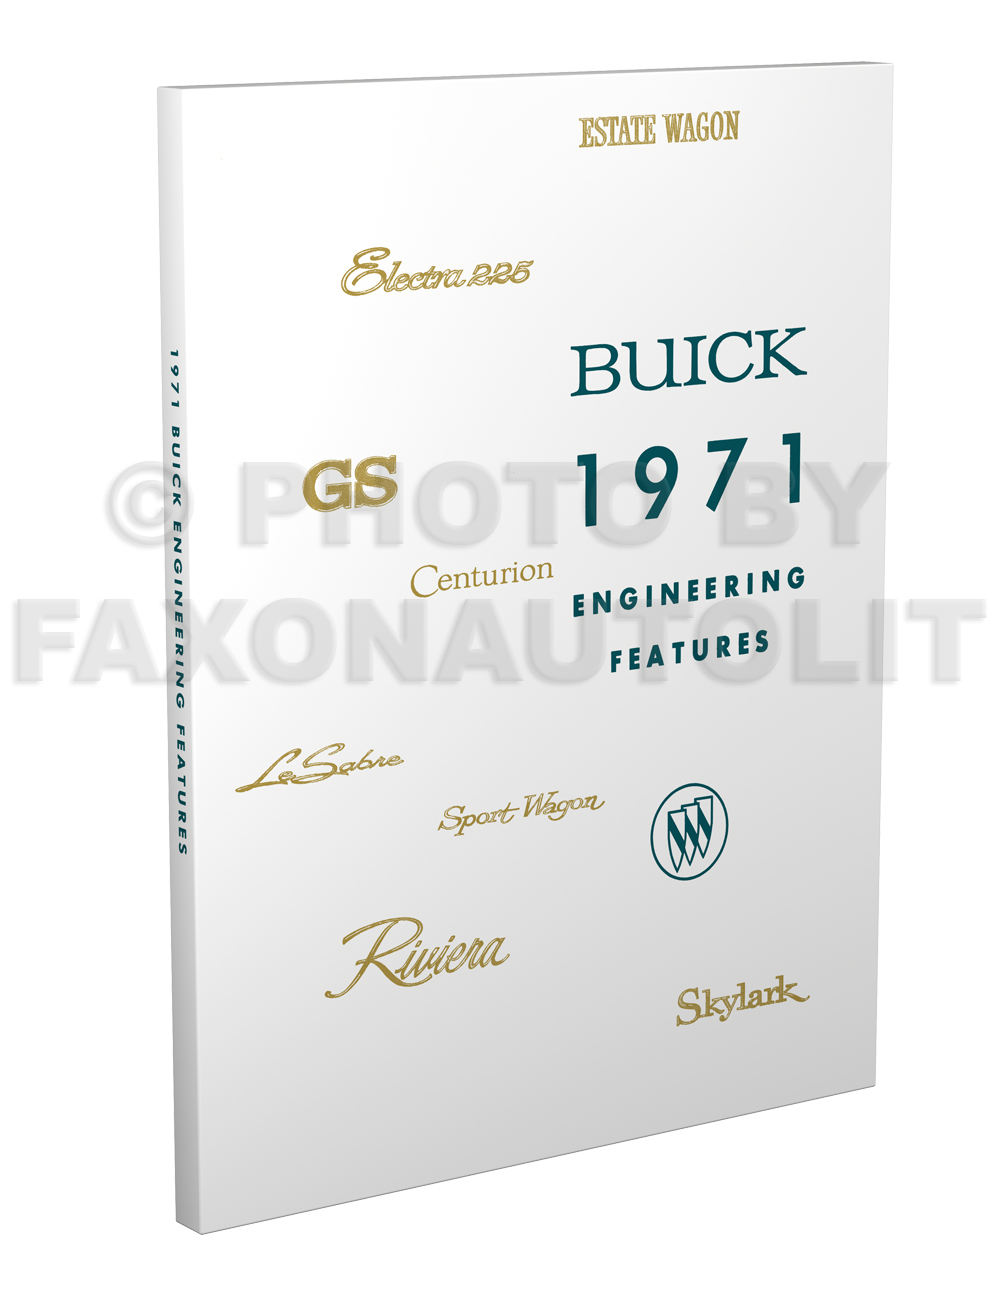 Search 1968 1969 70 71 72 Buick Skylark Gs Gsx Electra Lesabre Wiring 1971 Engineering Features And Specifications Manual Reprint